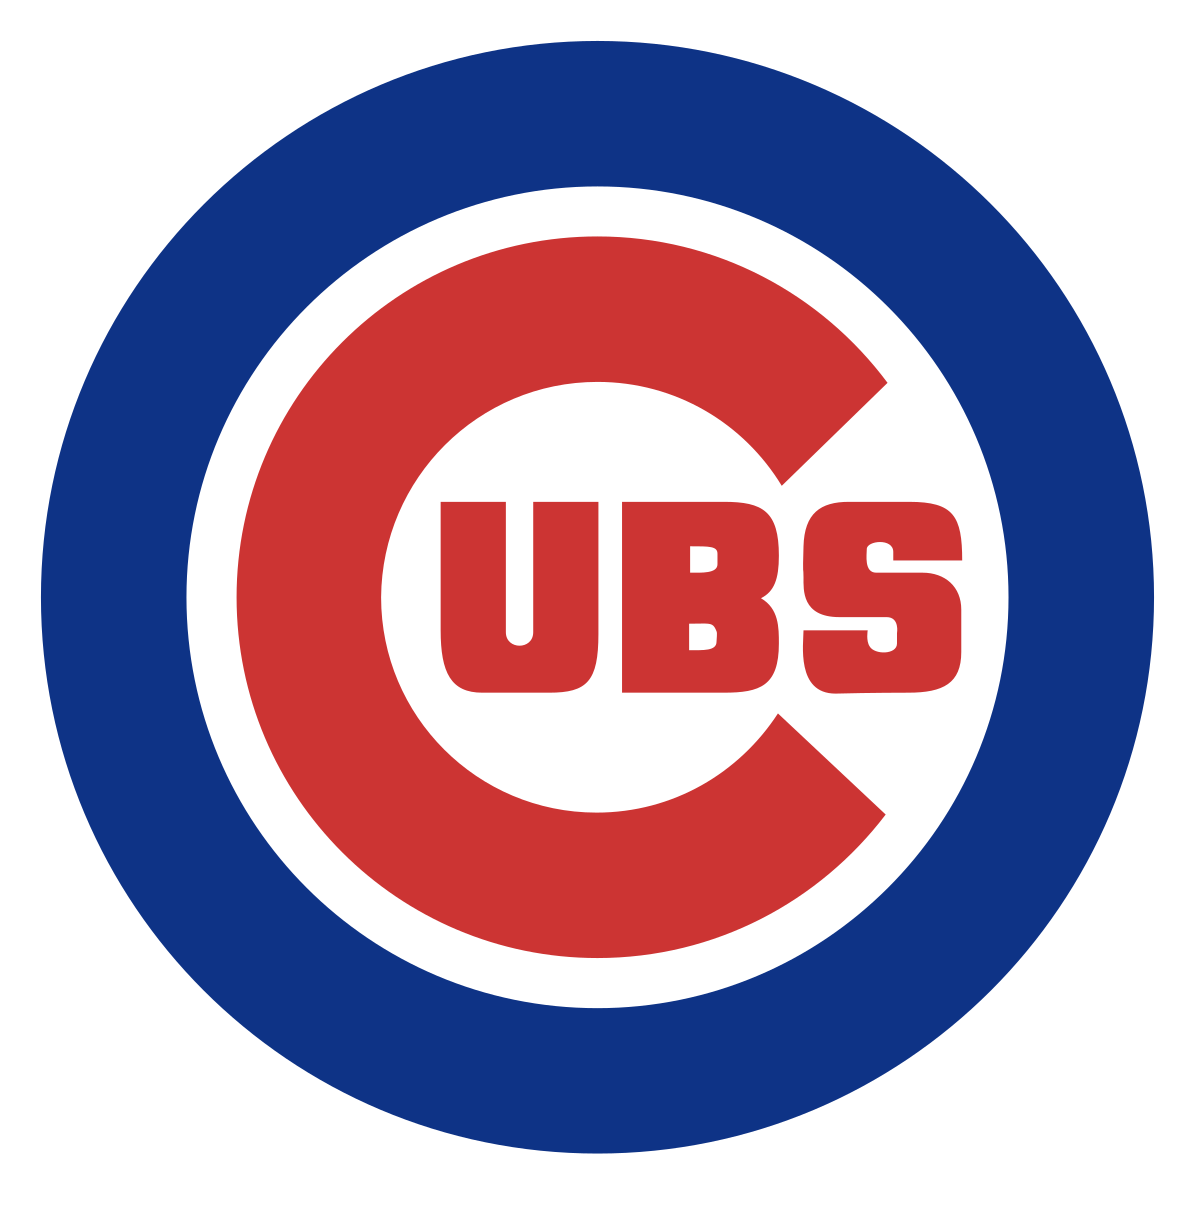 Programme TV Chicago Cubs